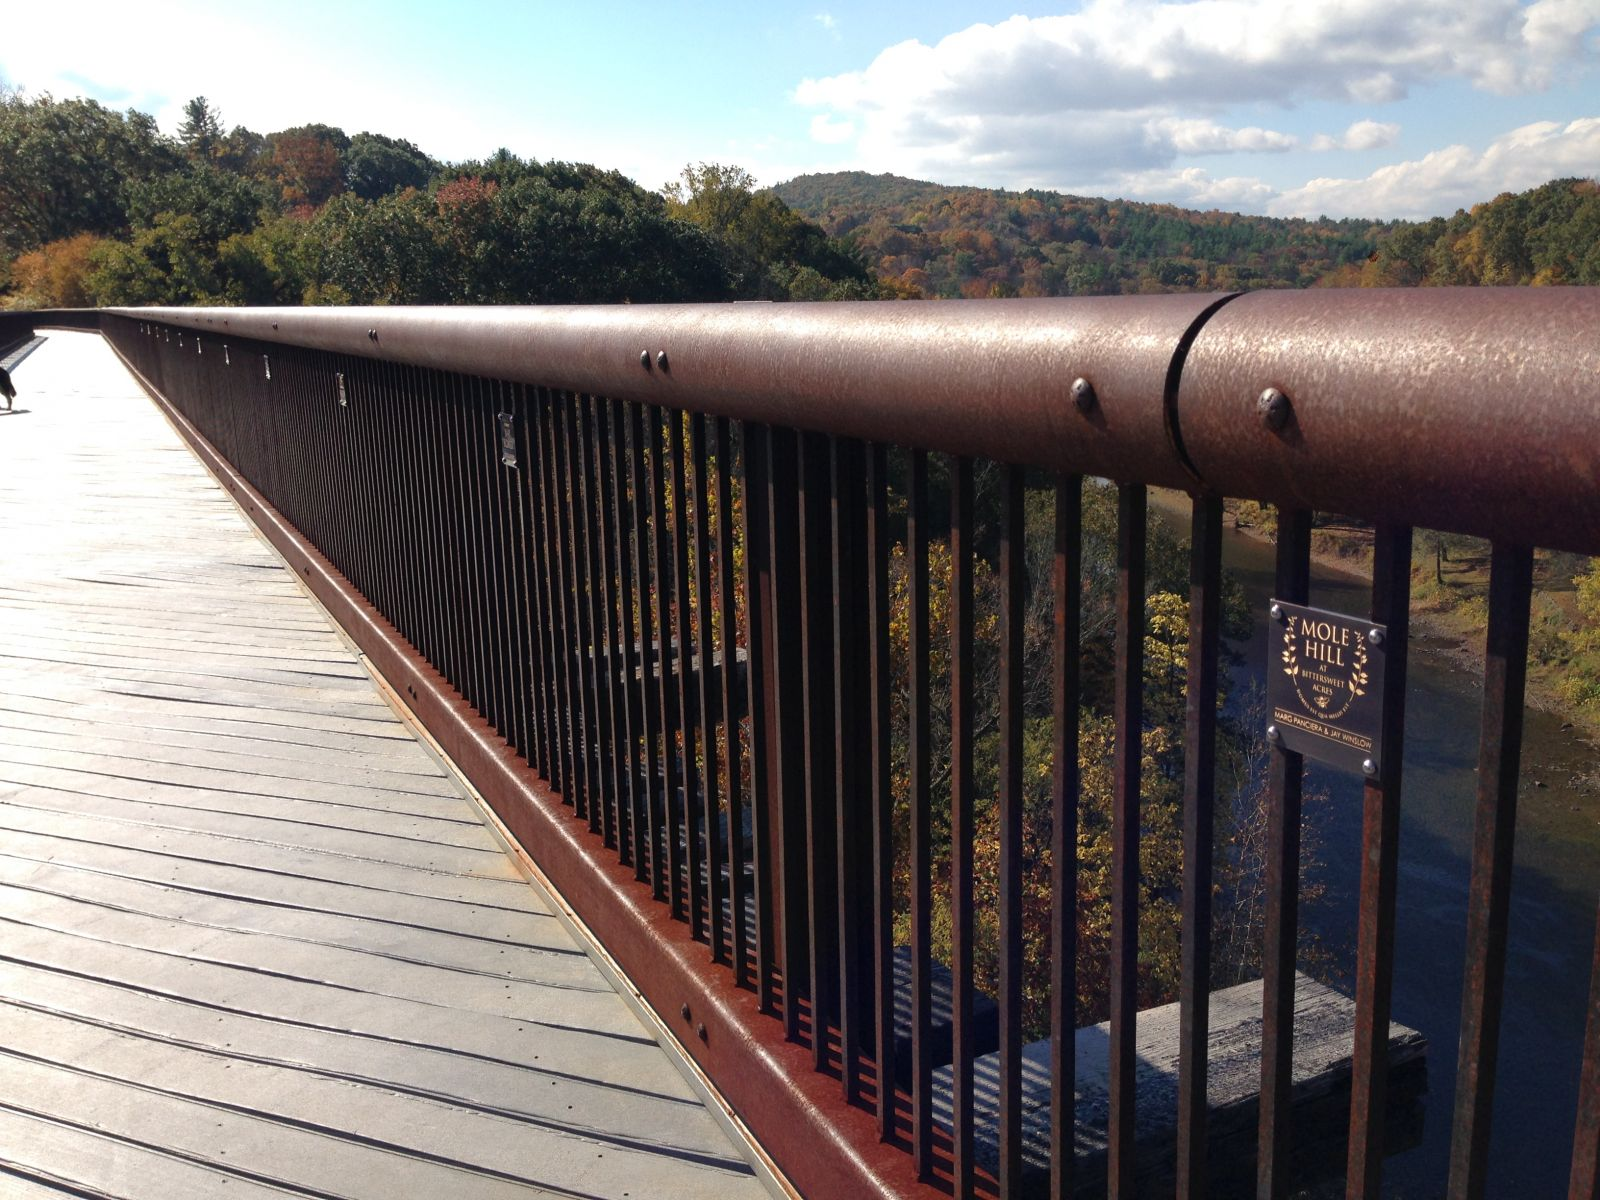 photo: The Rosendale Trestle is 150 feet high, 940 feet long, and an iconic landmark on the trail.